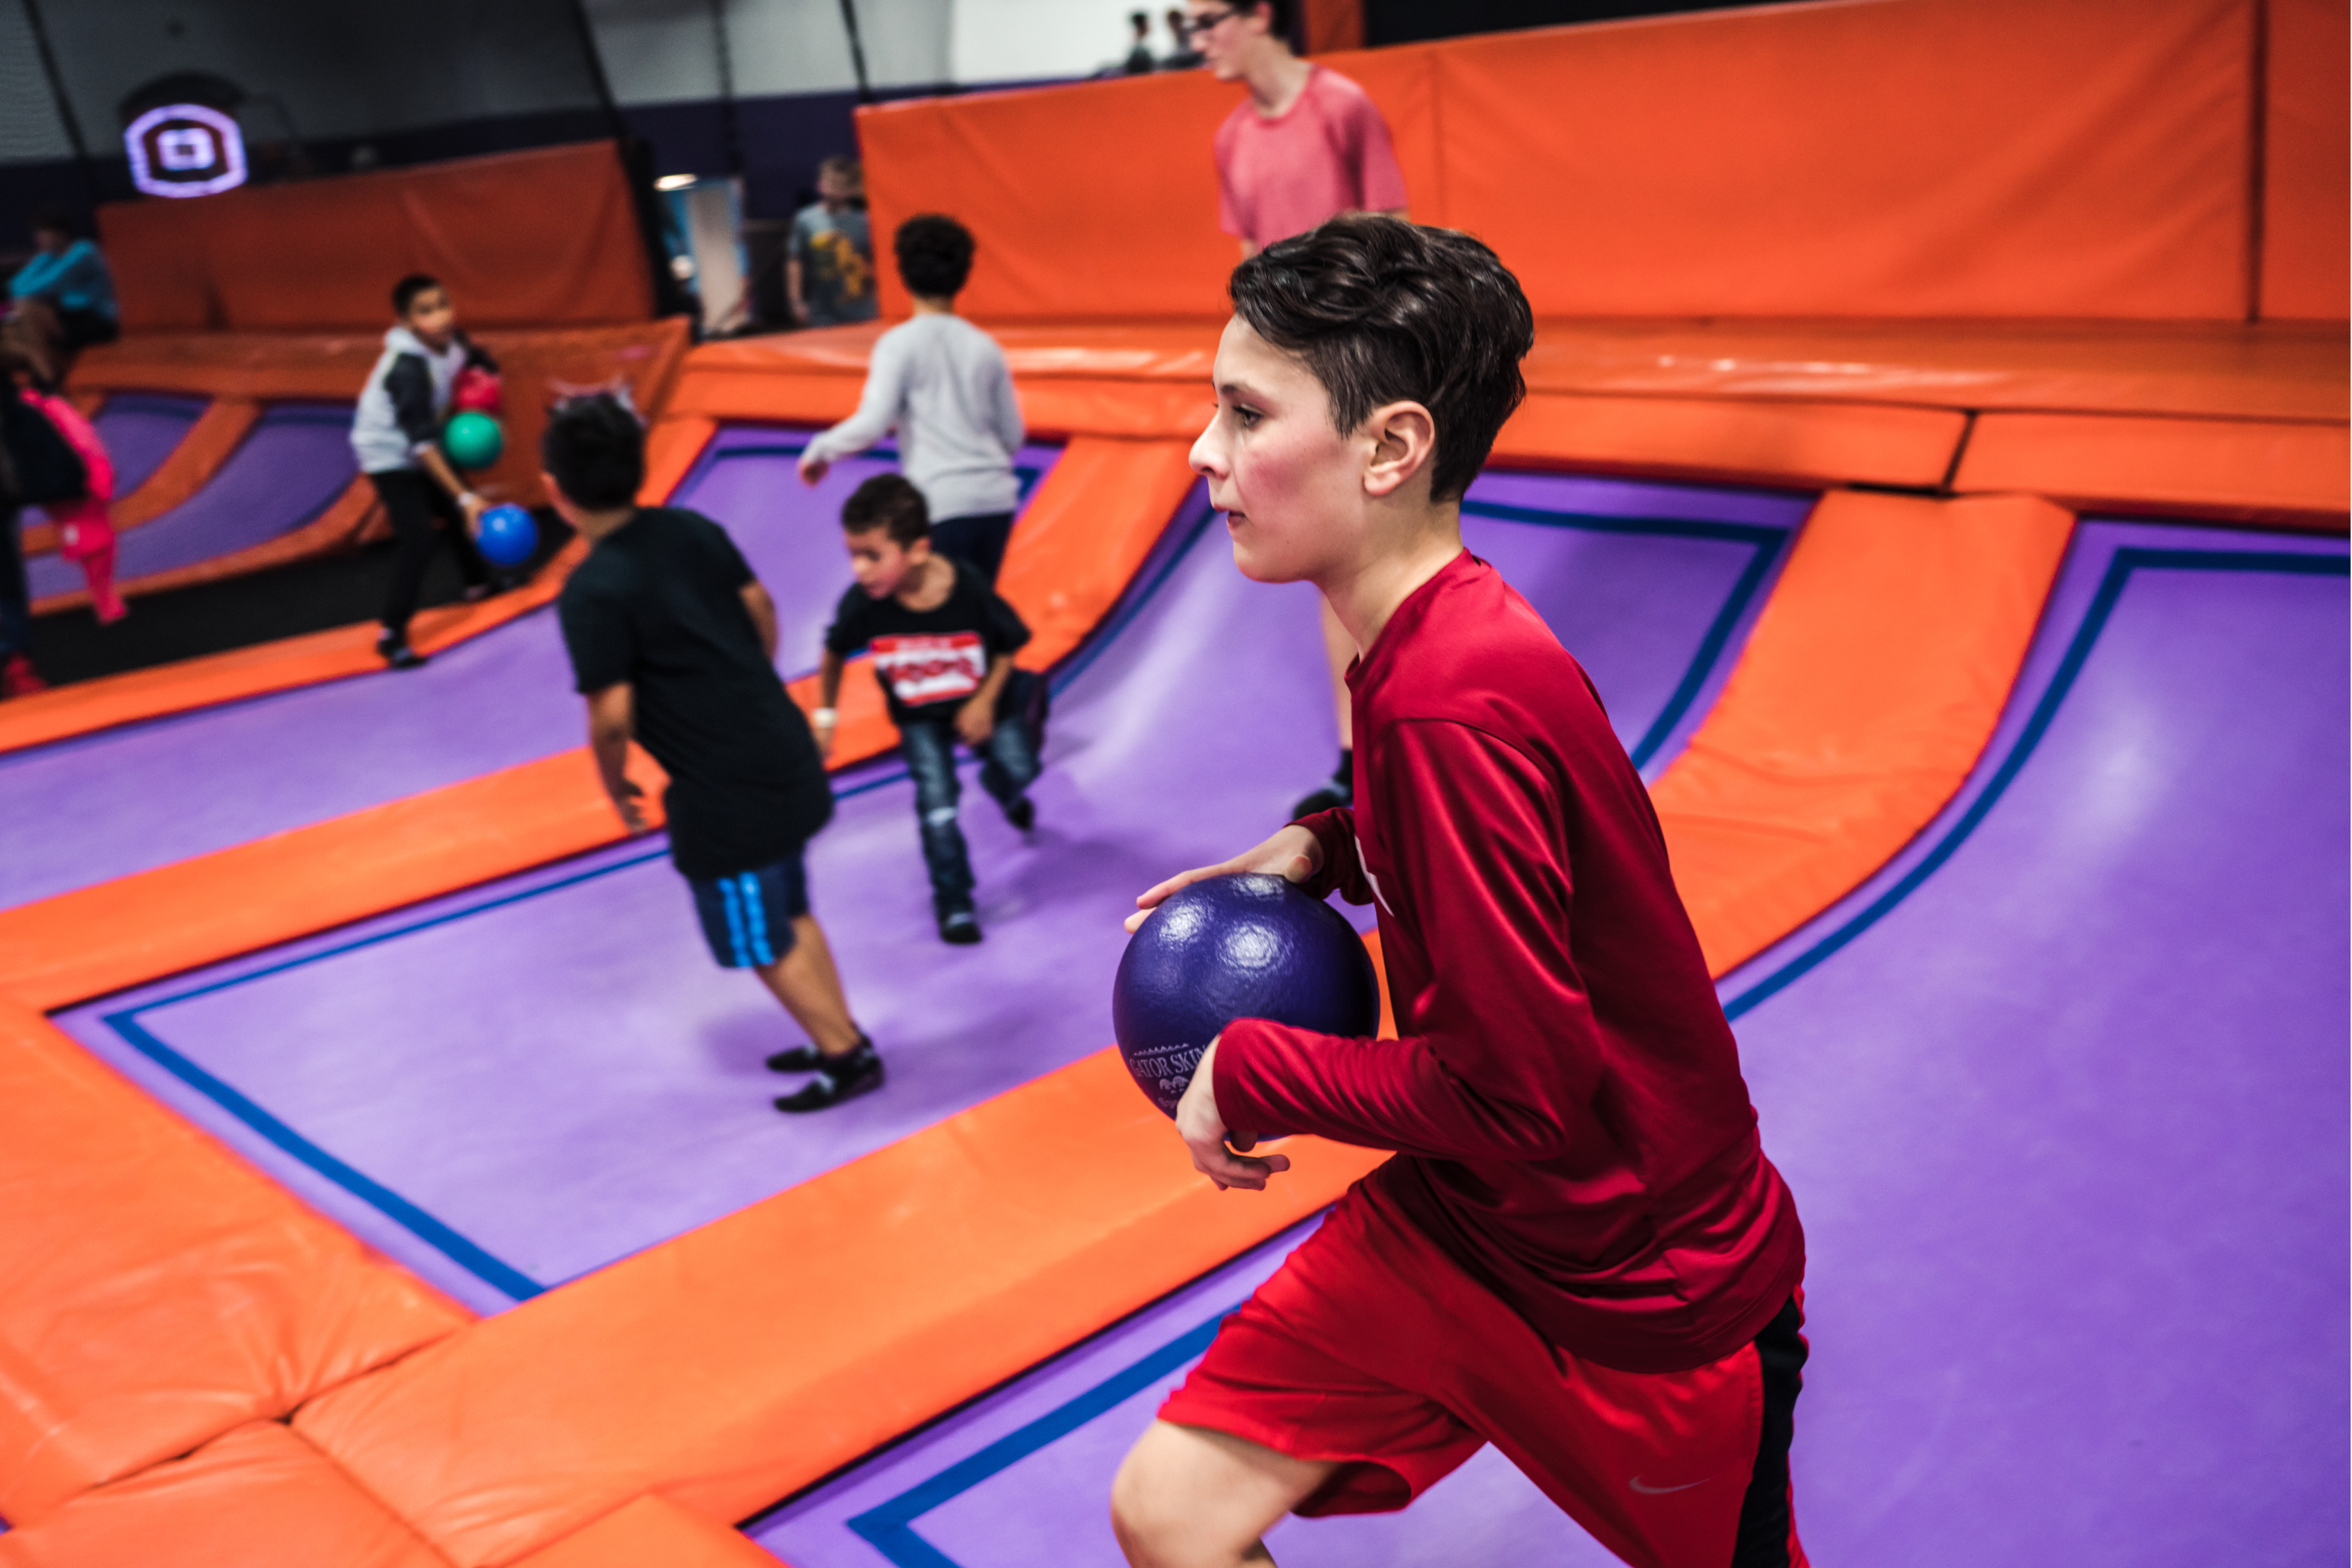 Altitude Trampoline Park: A Complete Indoor Adventure Place